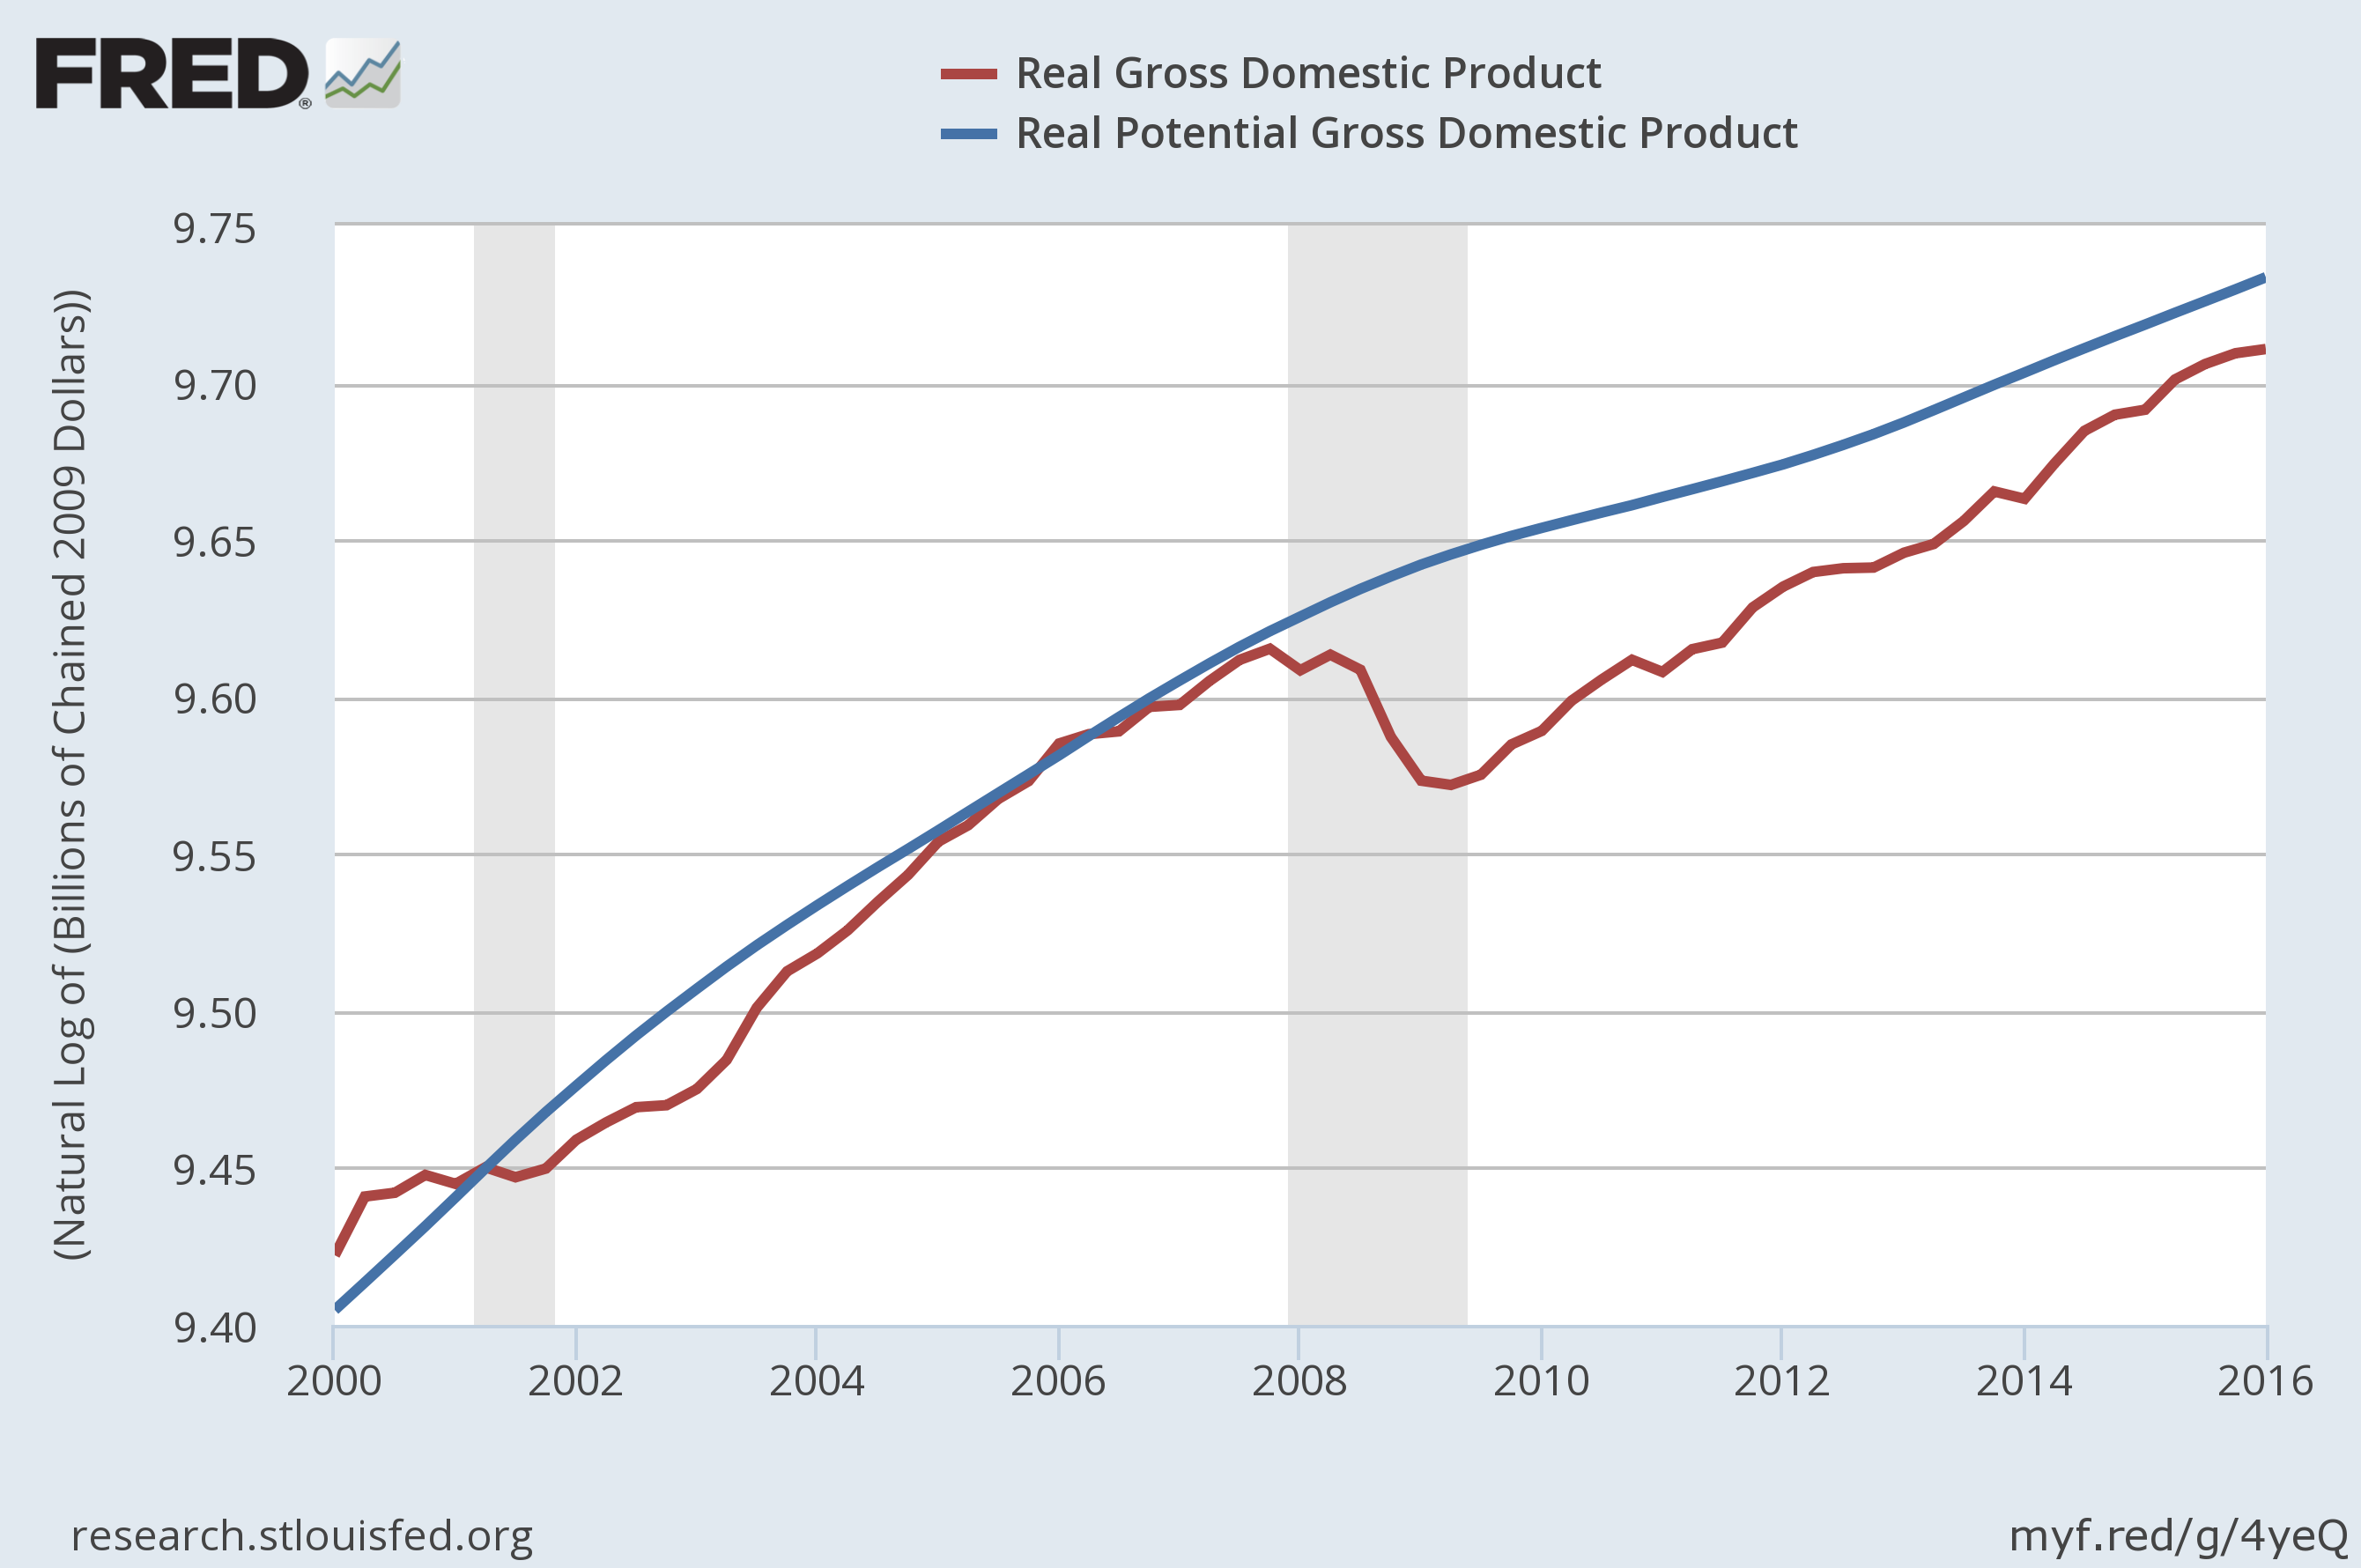 Line graph showing real GDP and potential GDP between 2000 and 2016. The lines stay close through many of the years, but in 2001, real GDP falls behind and takes 5 years to recover, then real GDP falls again in 20018 and has not yet recovered by 2016.